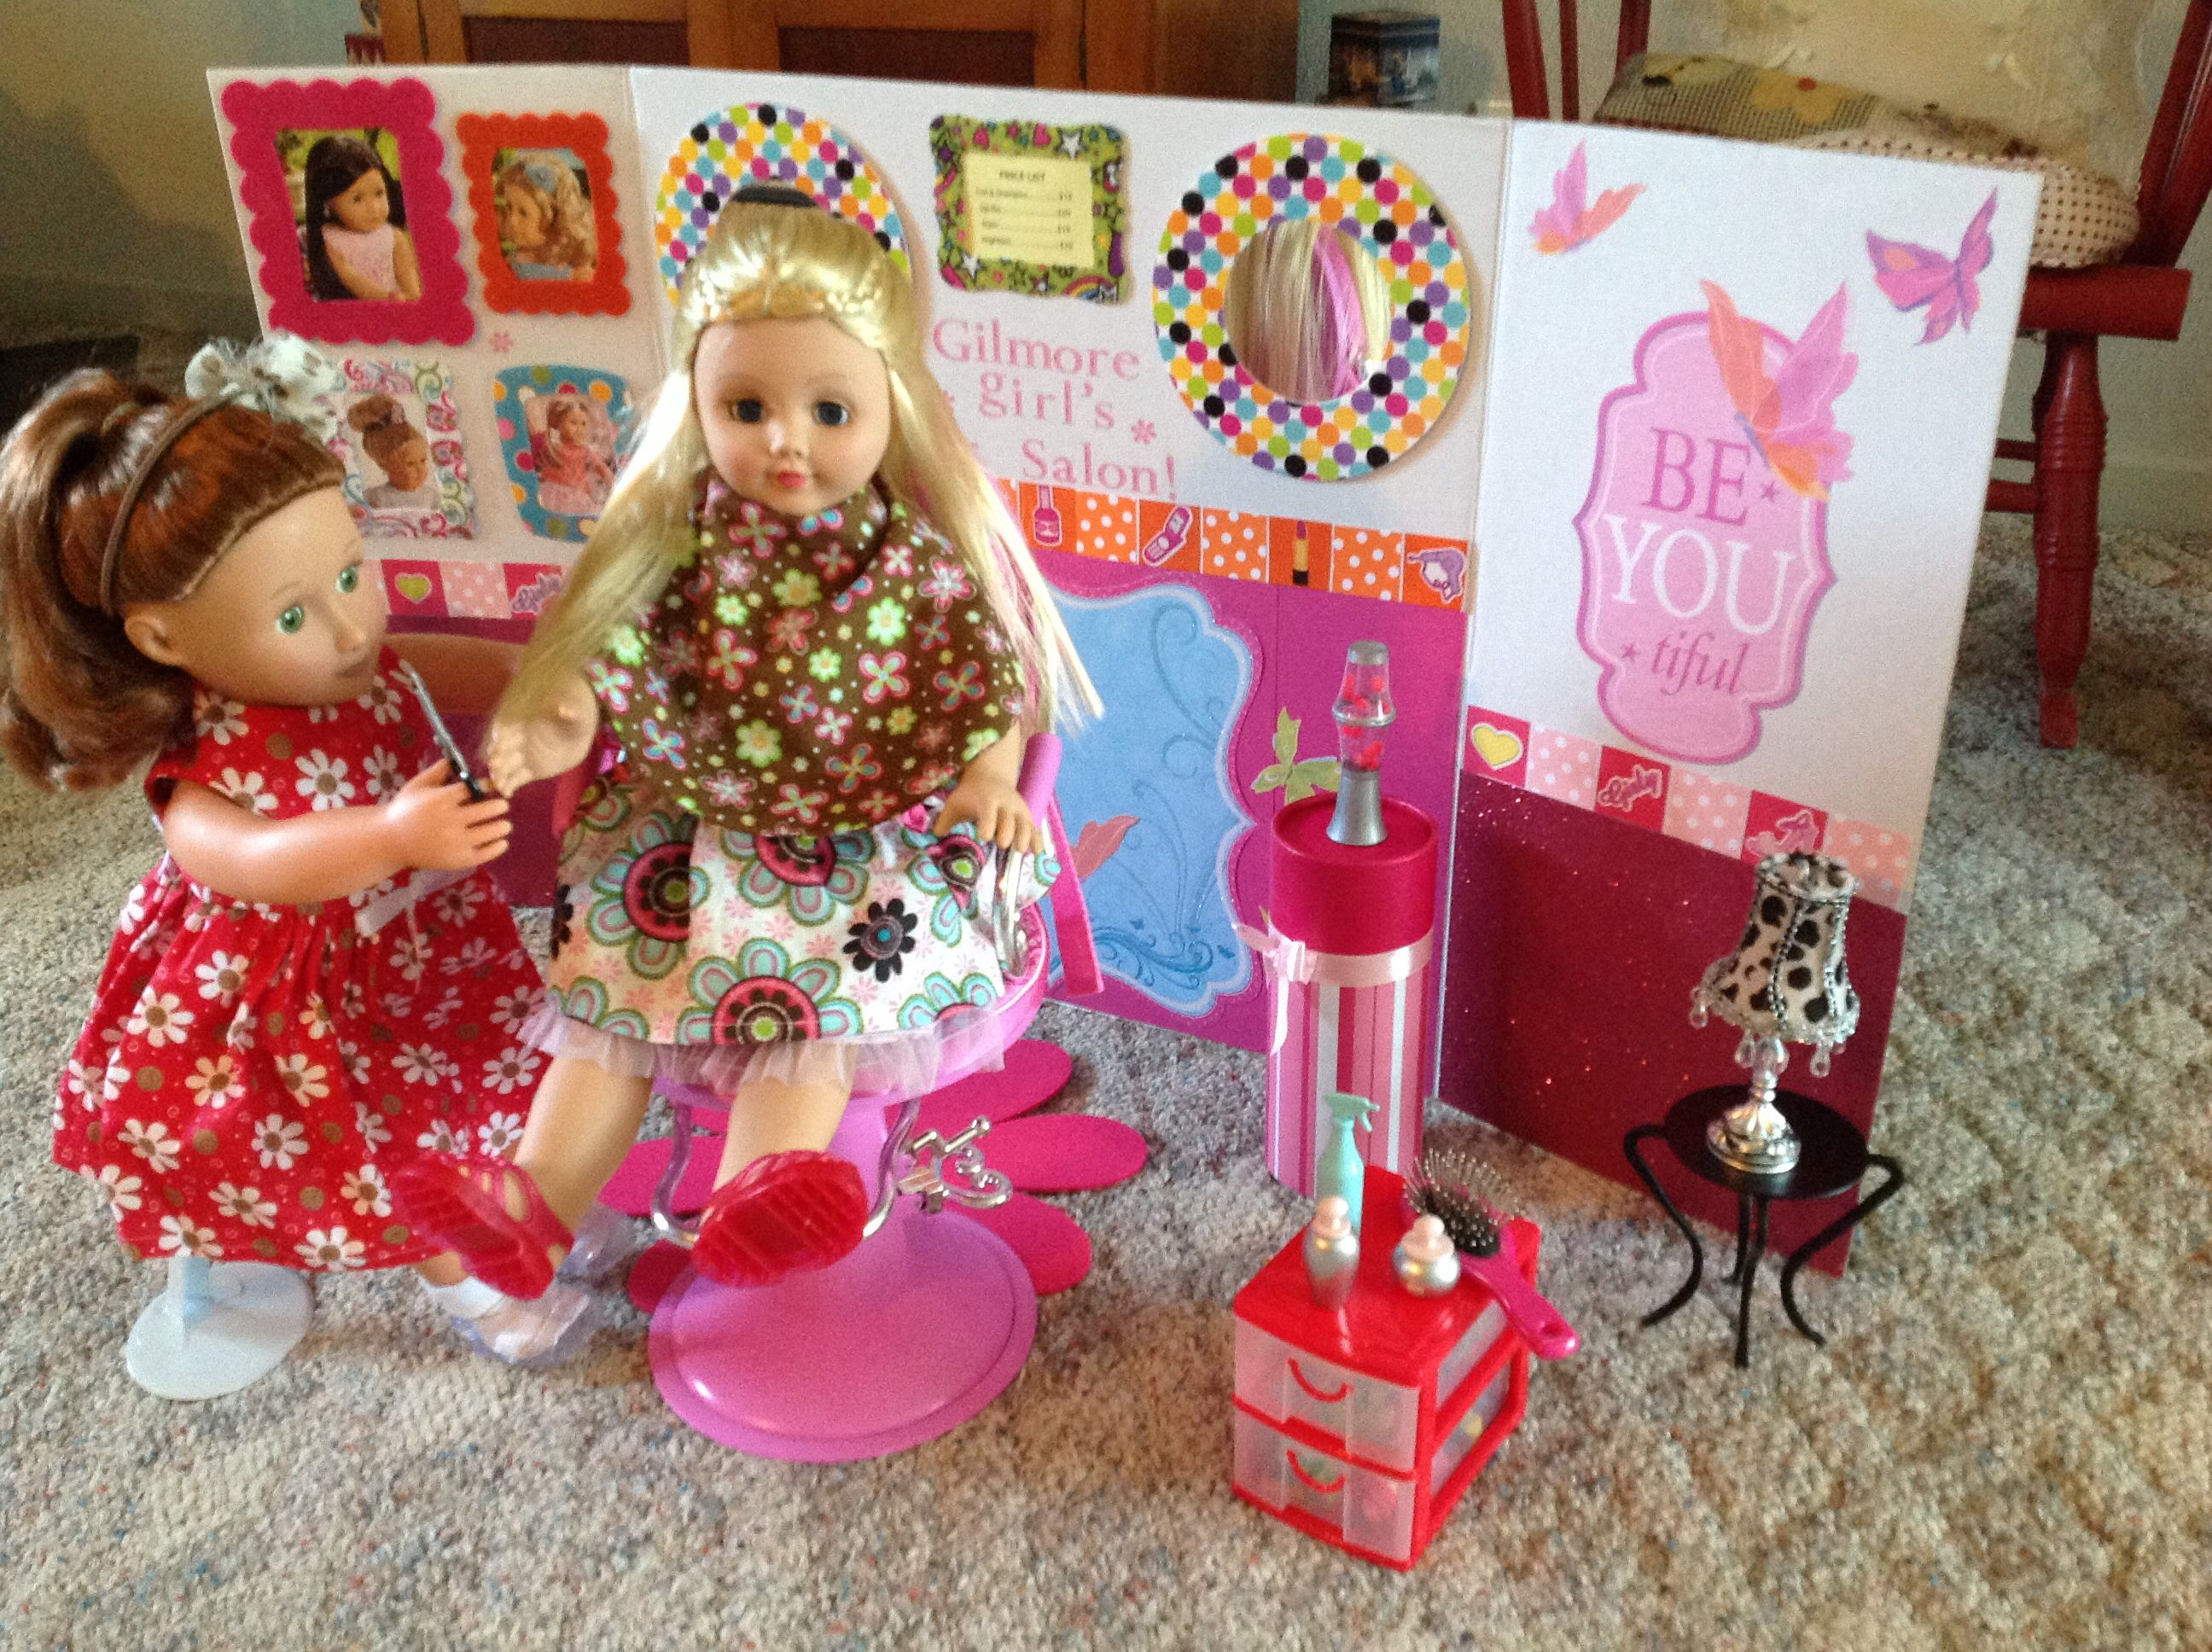 American Girl Doll Hair Salon Made With 3 Fold Project Board Add Scrapbook Paper Of American Girl Doll Furniture My American Girl Doll American Girl Doll Diy